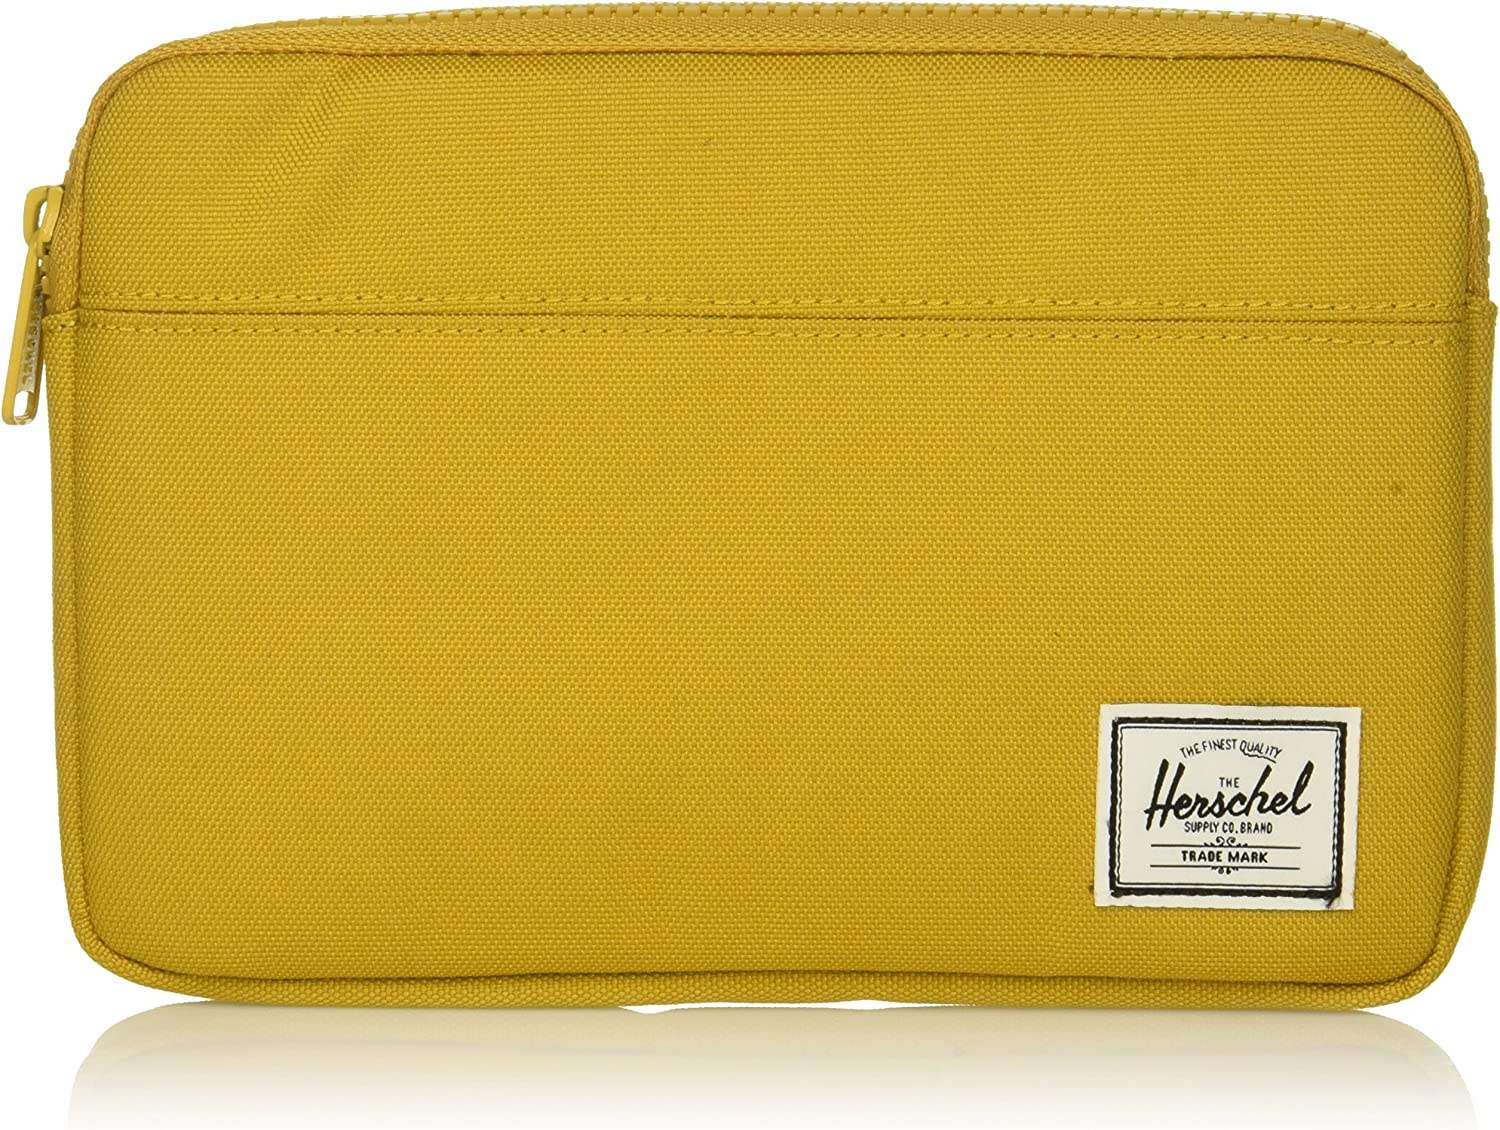 Herschel Anchor Sleeve for MacBook/iPad, Arrowwood, Mini